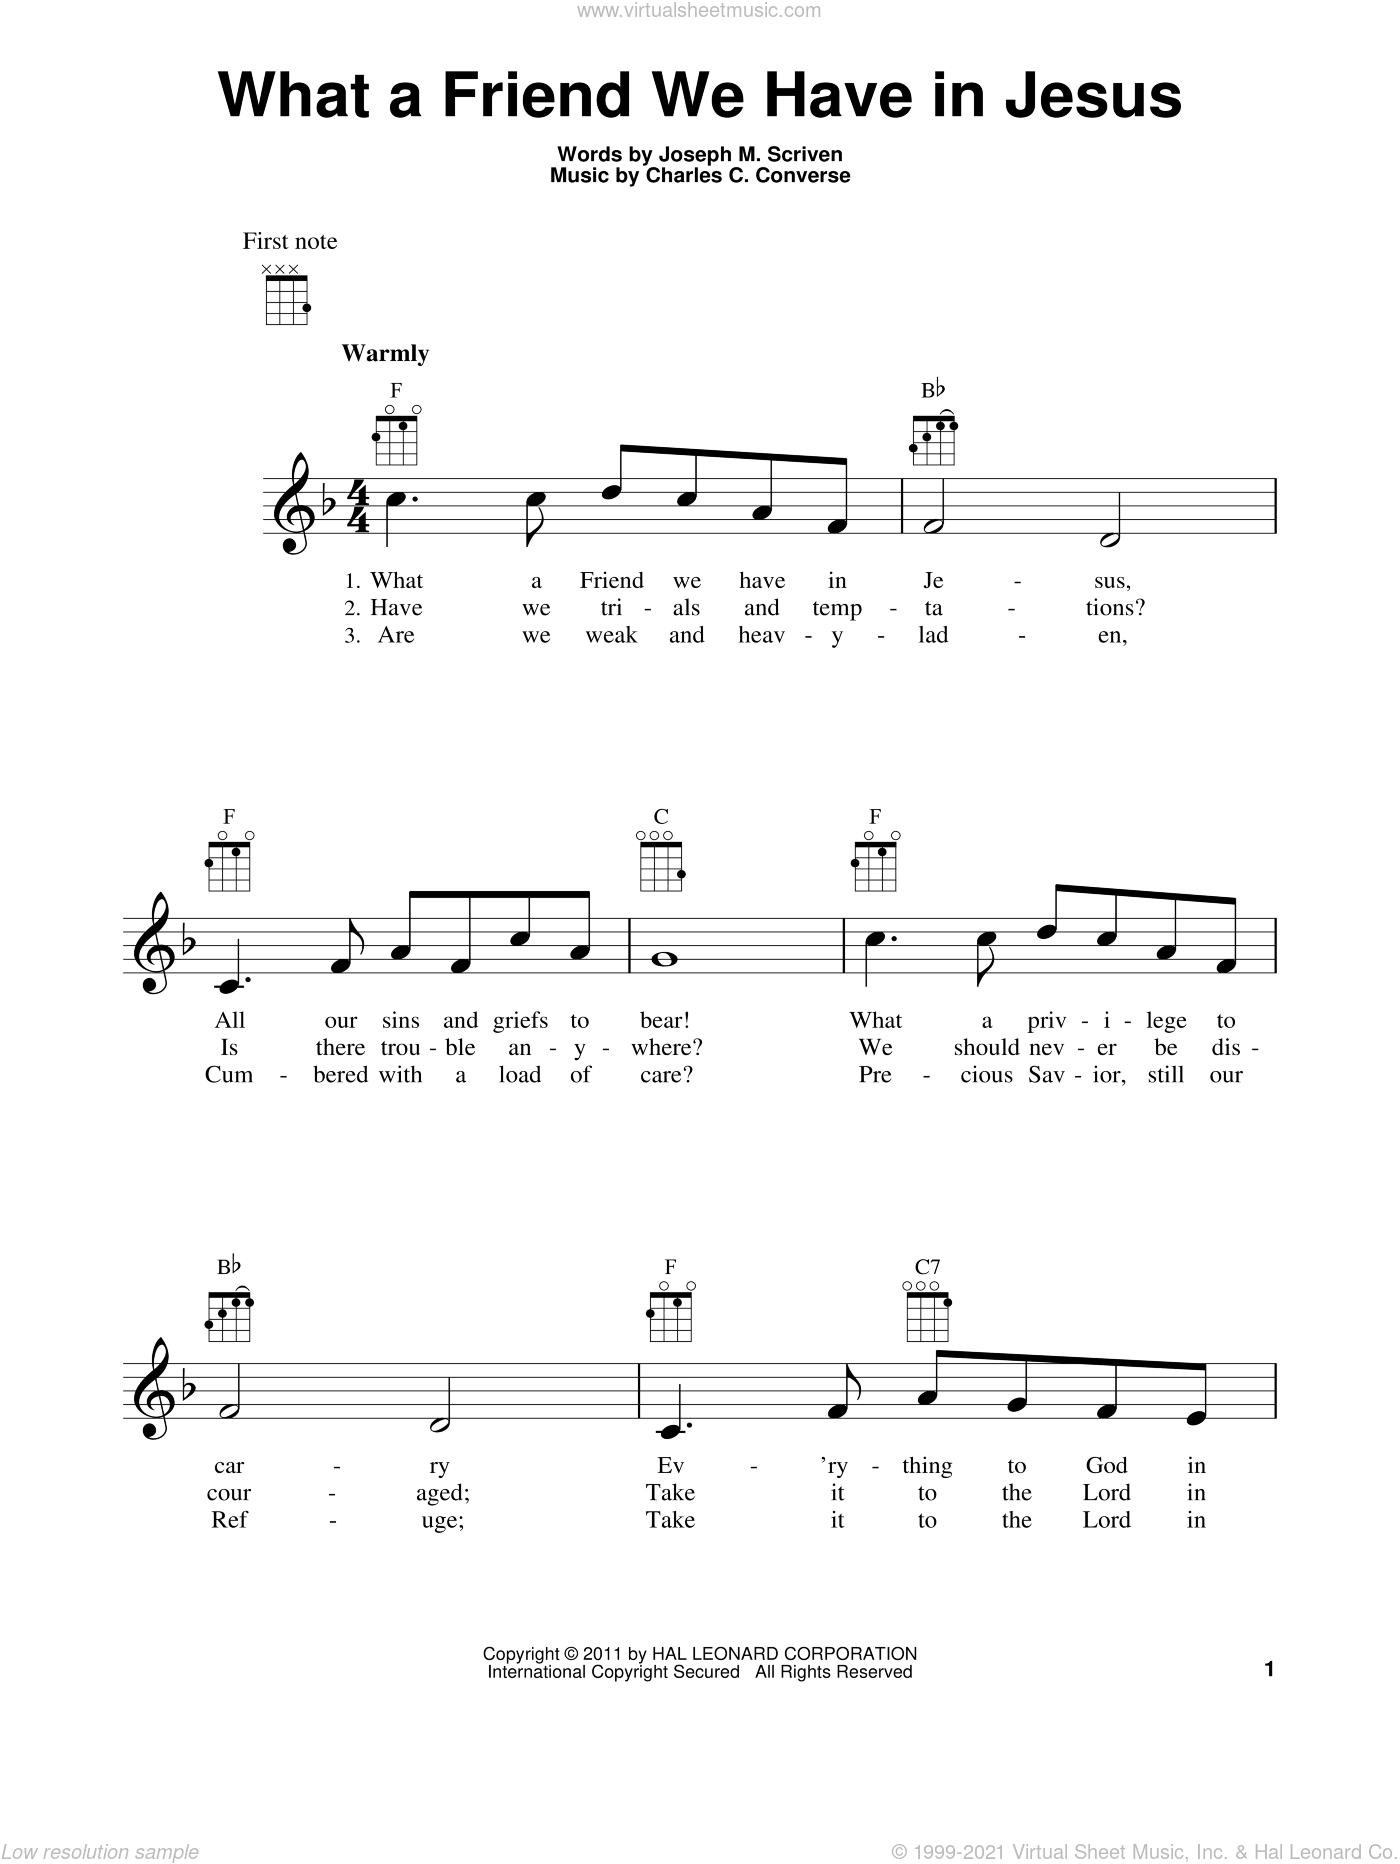 What A Friend We Have In Jesus sheet music for ukulele by Joseph M. Scriven and Charles C. Converse, intermediate skill level